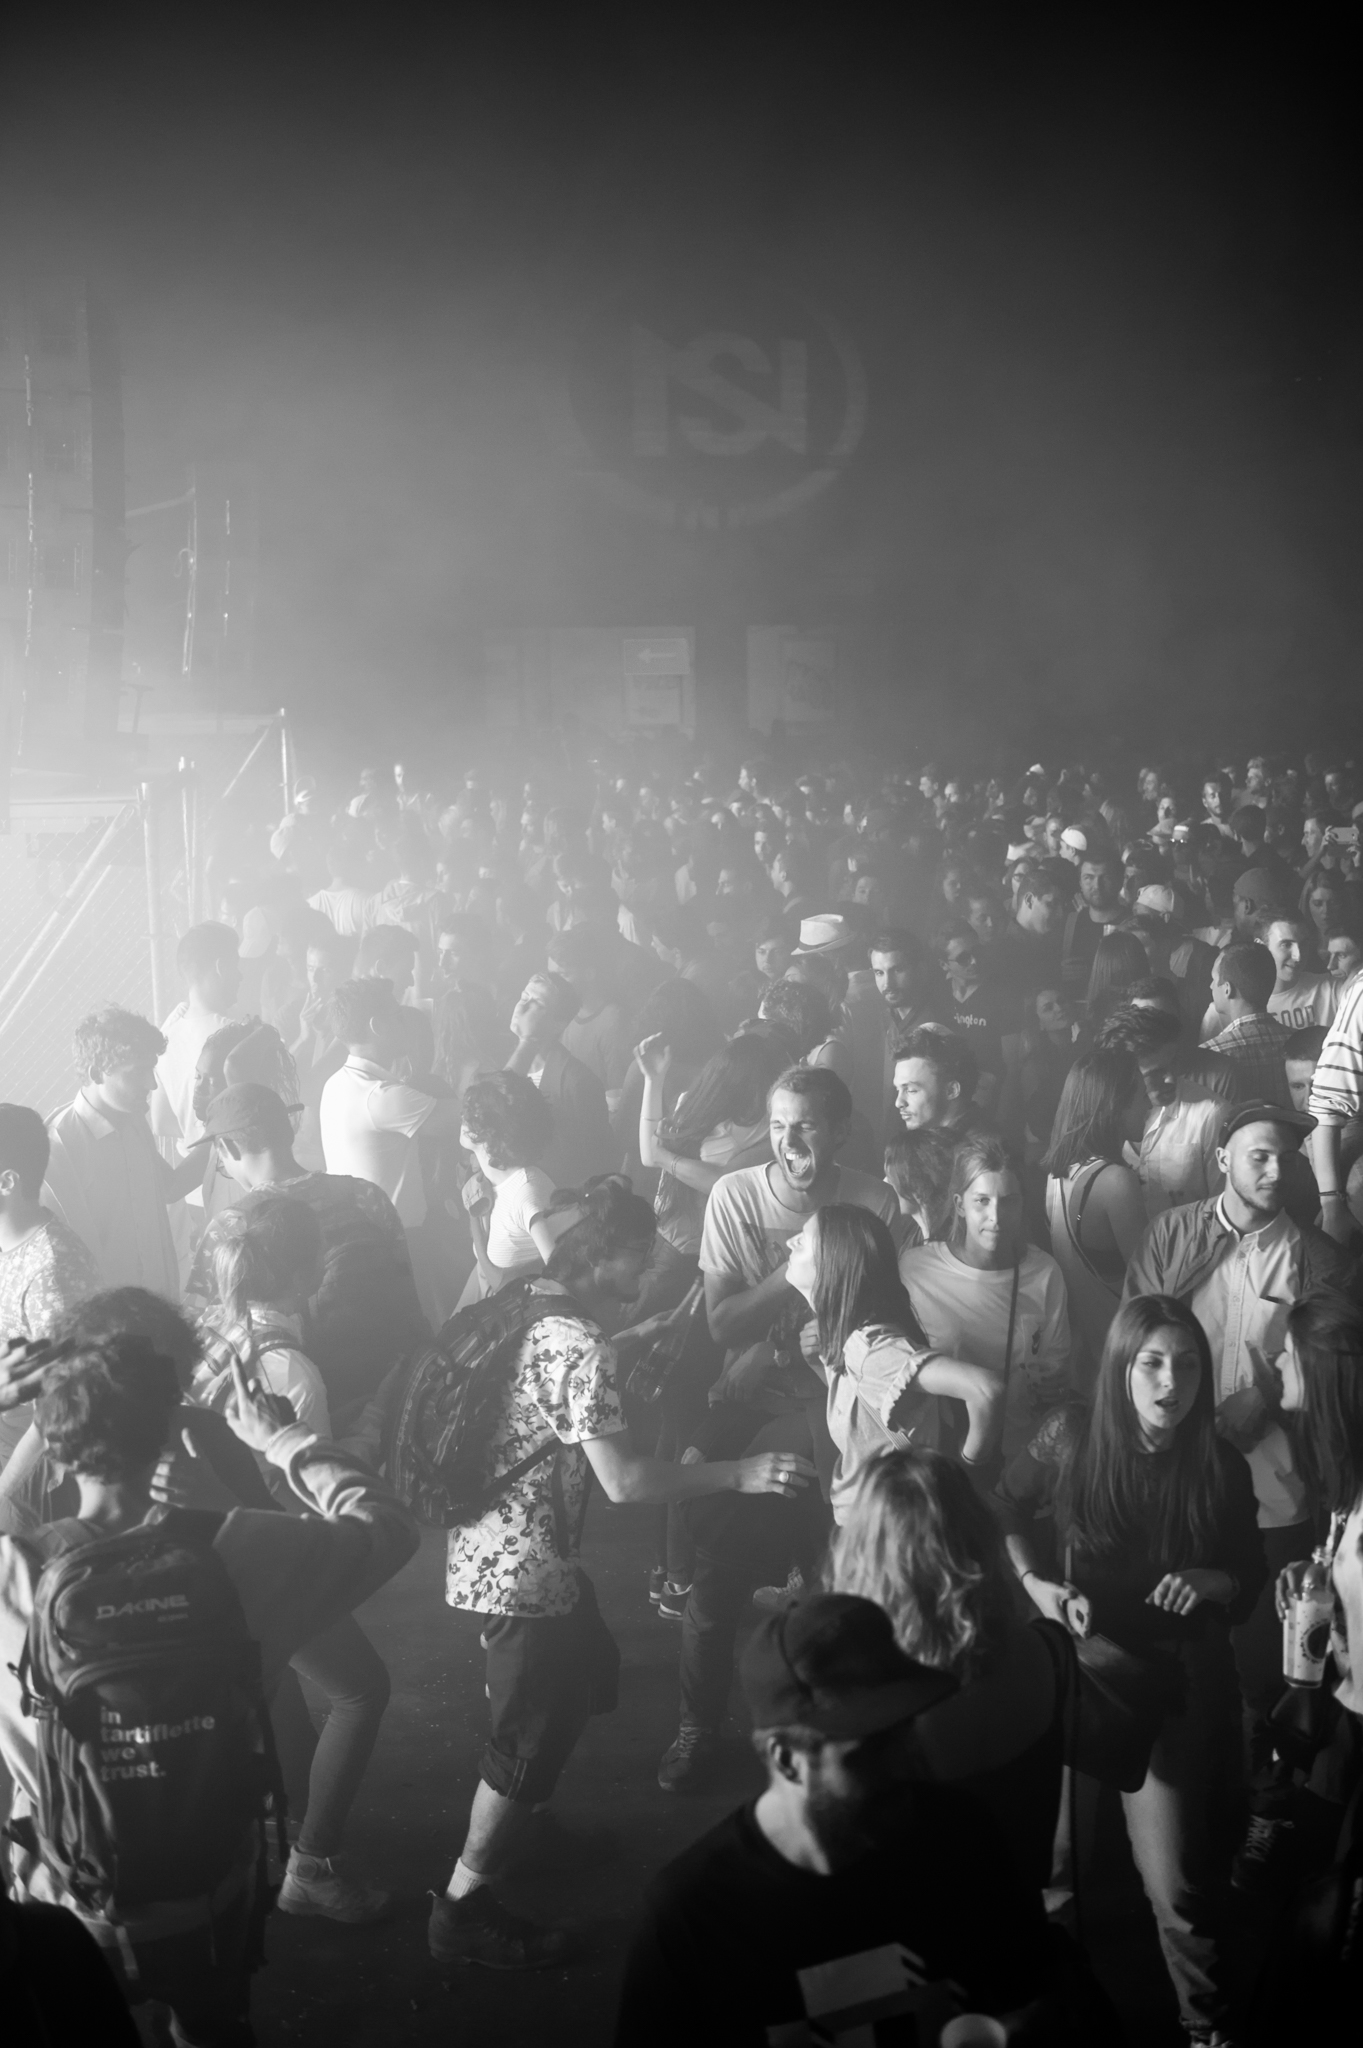 nuits sonores, festival, music, live, electro, rock, reportage, reportage live, photo, laurie diaz, photographe, lumière, light, studio le carre, marche gare, extra, lyon, foule, fete,  noir et blanc, black and white, ballons, couleur, public, dj, laurie Diaz photographe reportage live lyon, event, evenentiel, festival, scene